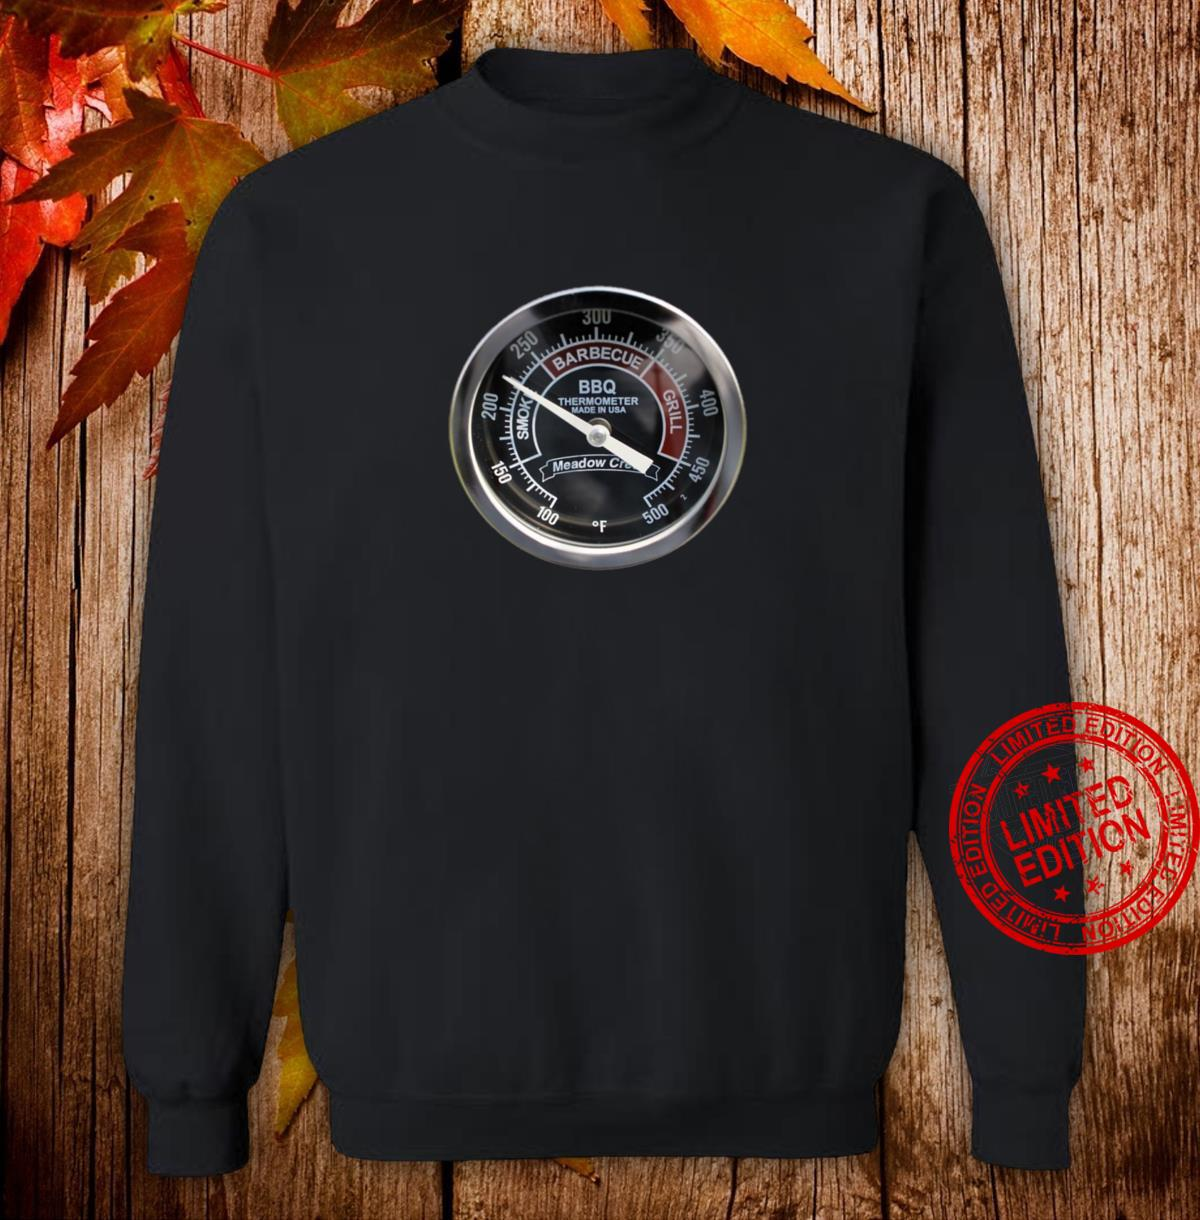 BBQ Perfection 225 Degrees Shirt sweater